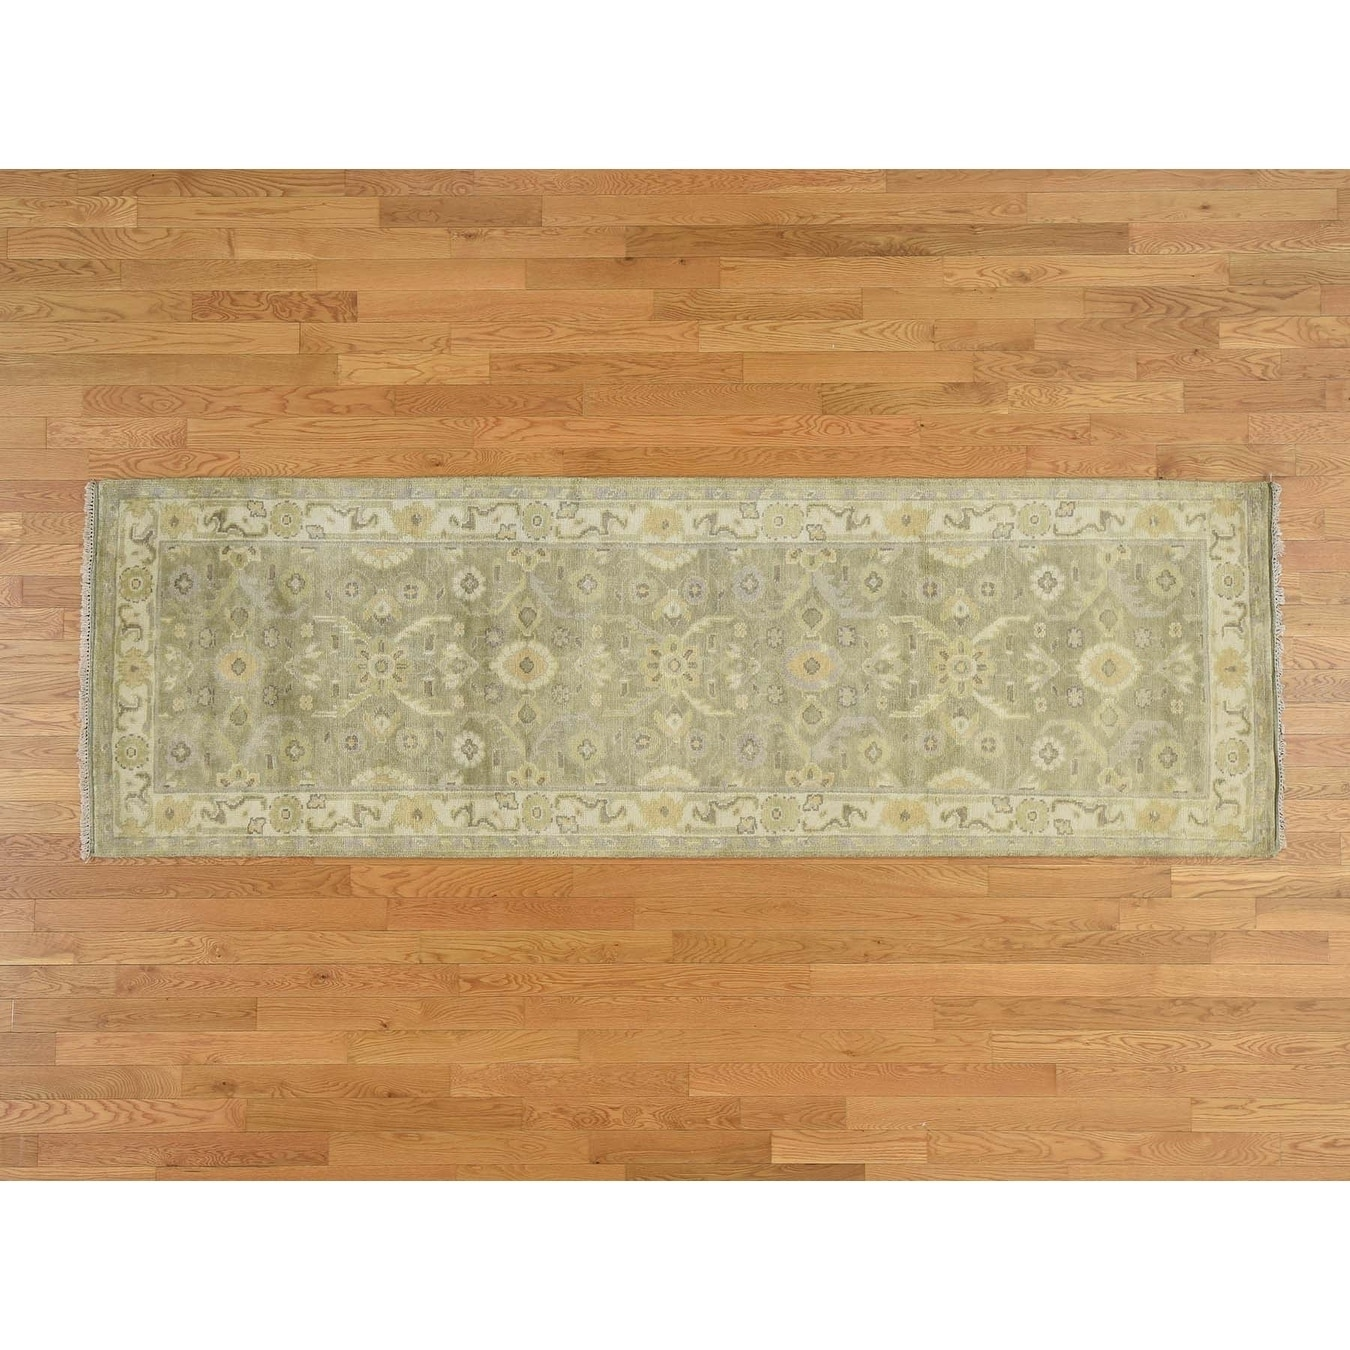 Hand Knotted Green Oushak And Peshawar with Wool Oriental Rug - 33 x 101